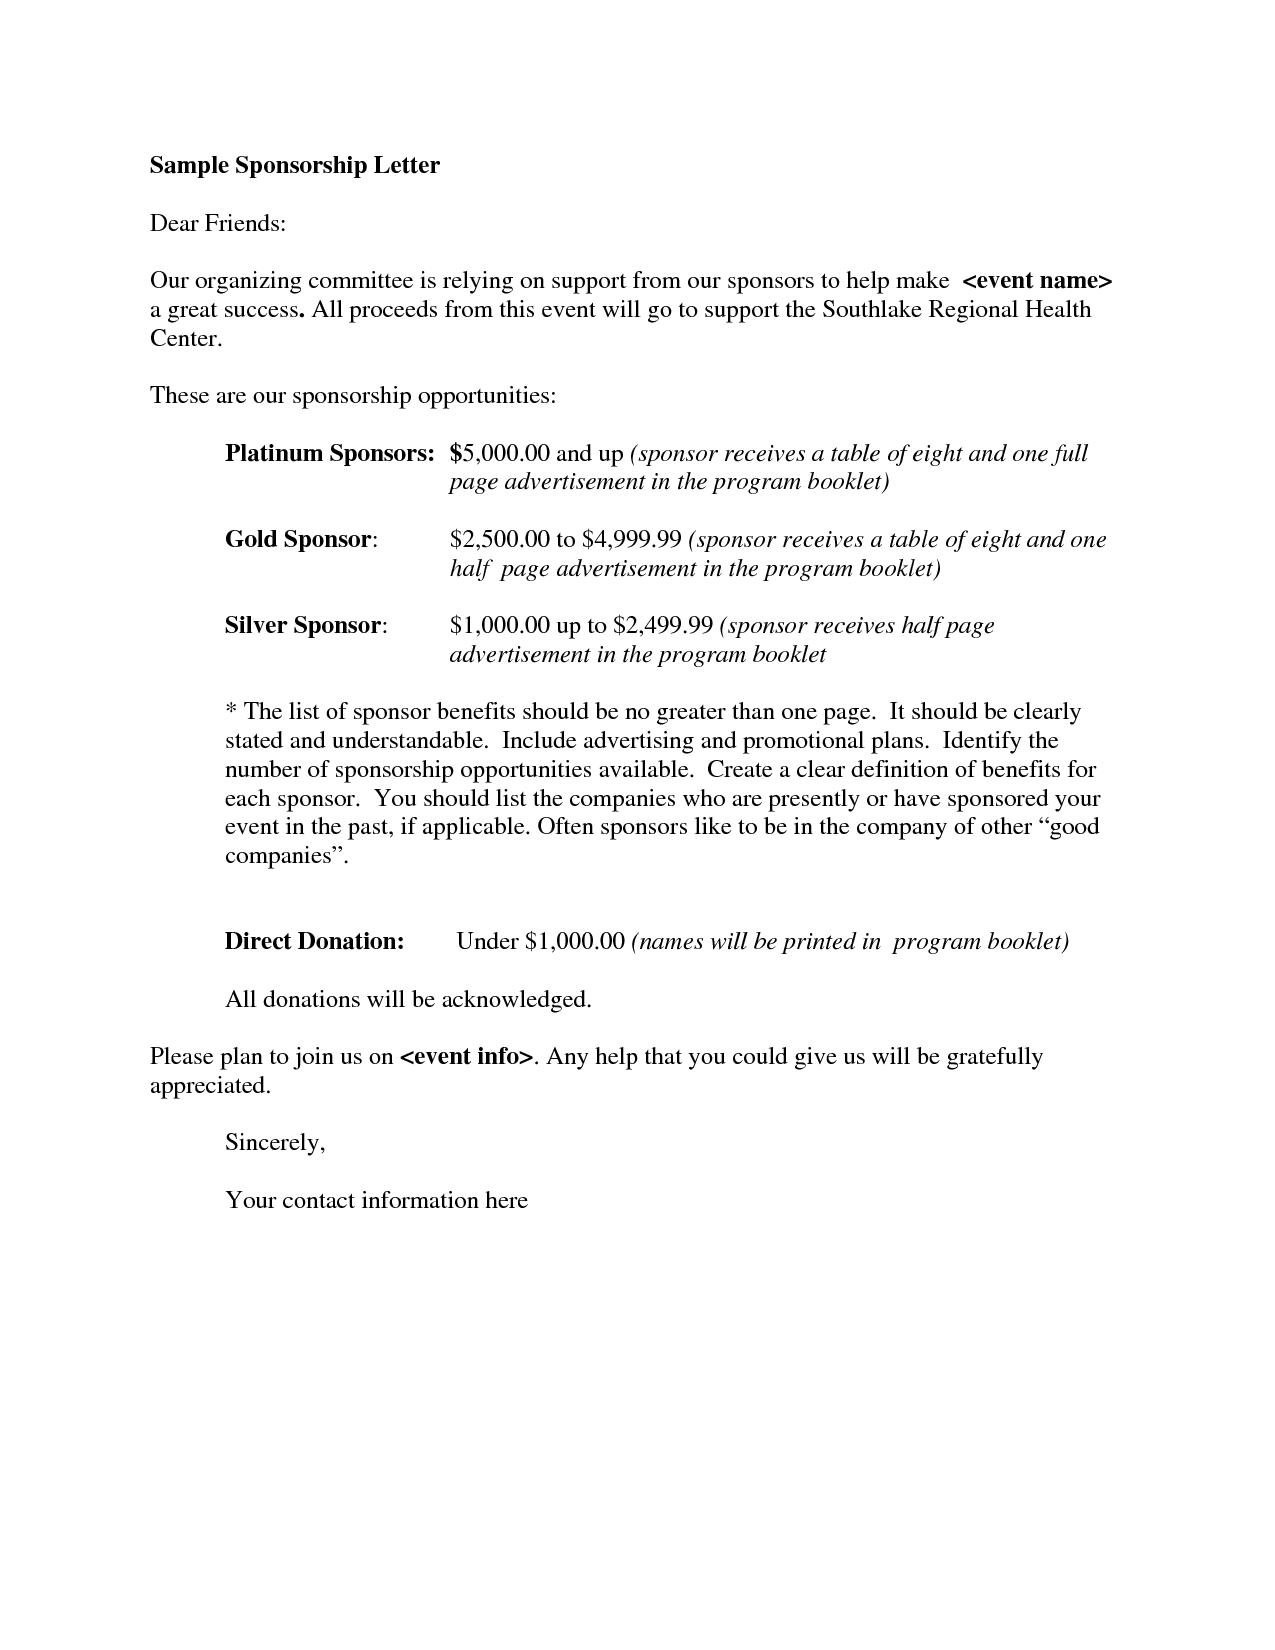 free proposal letter template – Sponsorship Letter Template Free